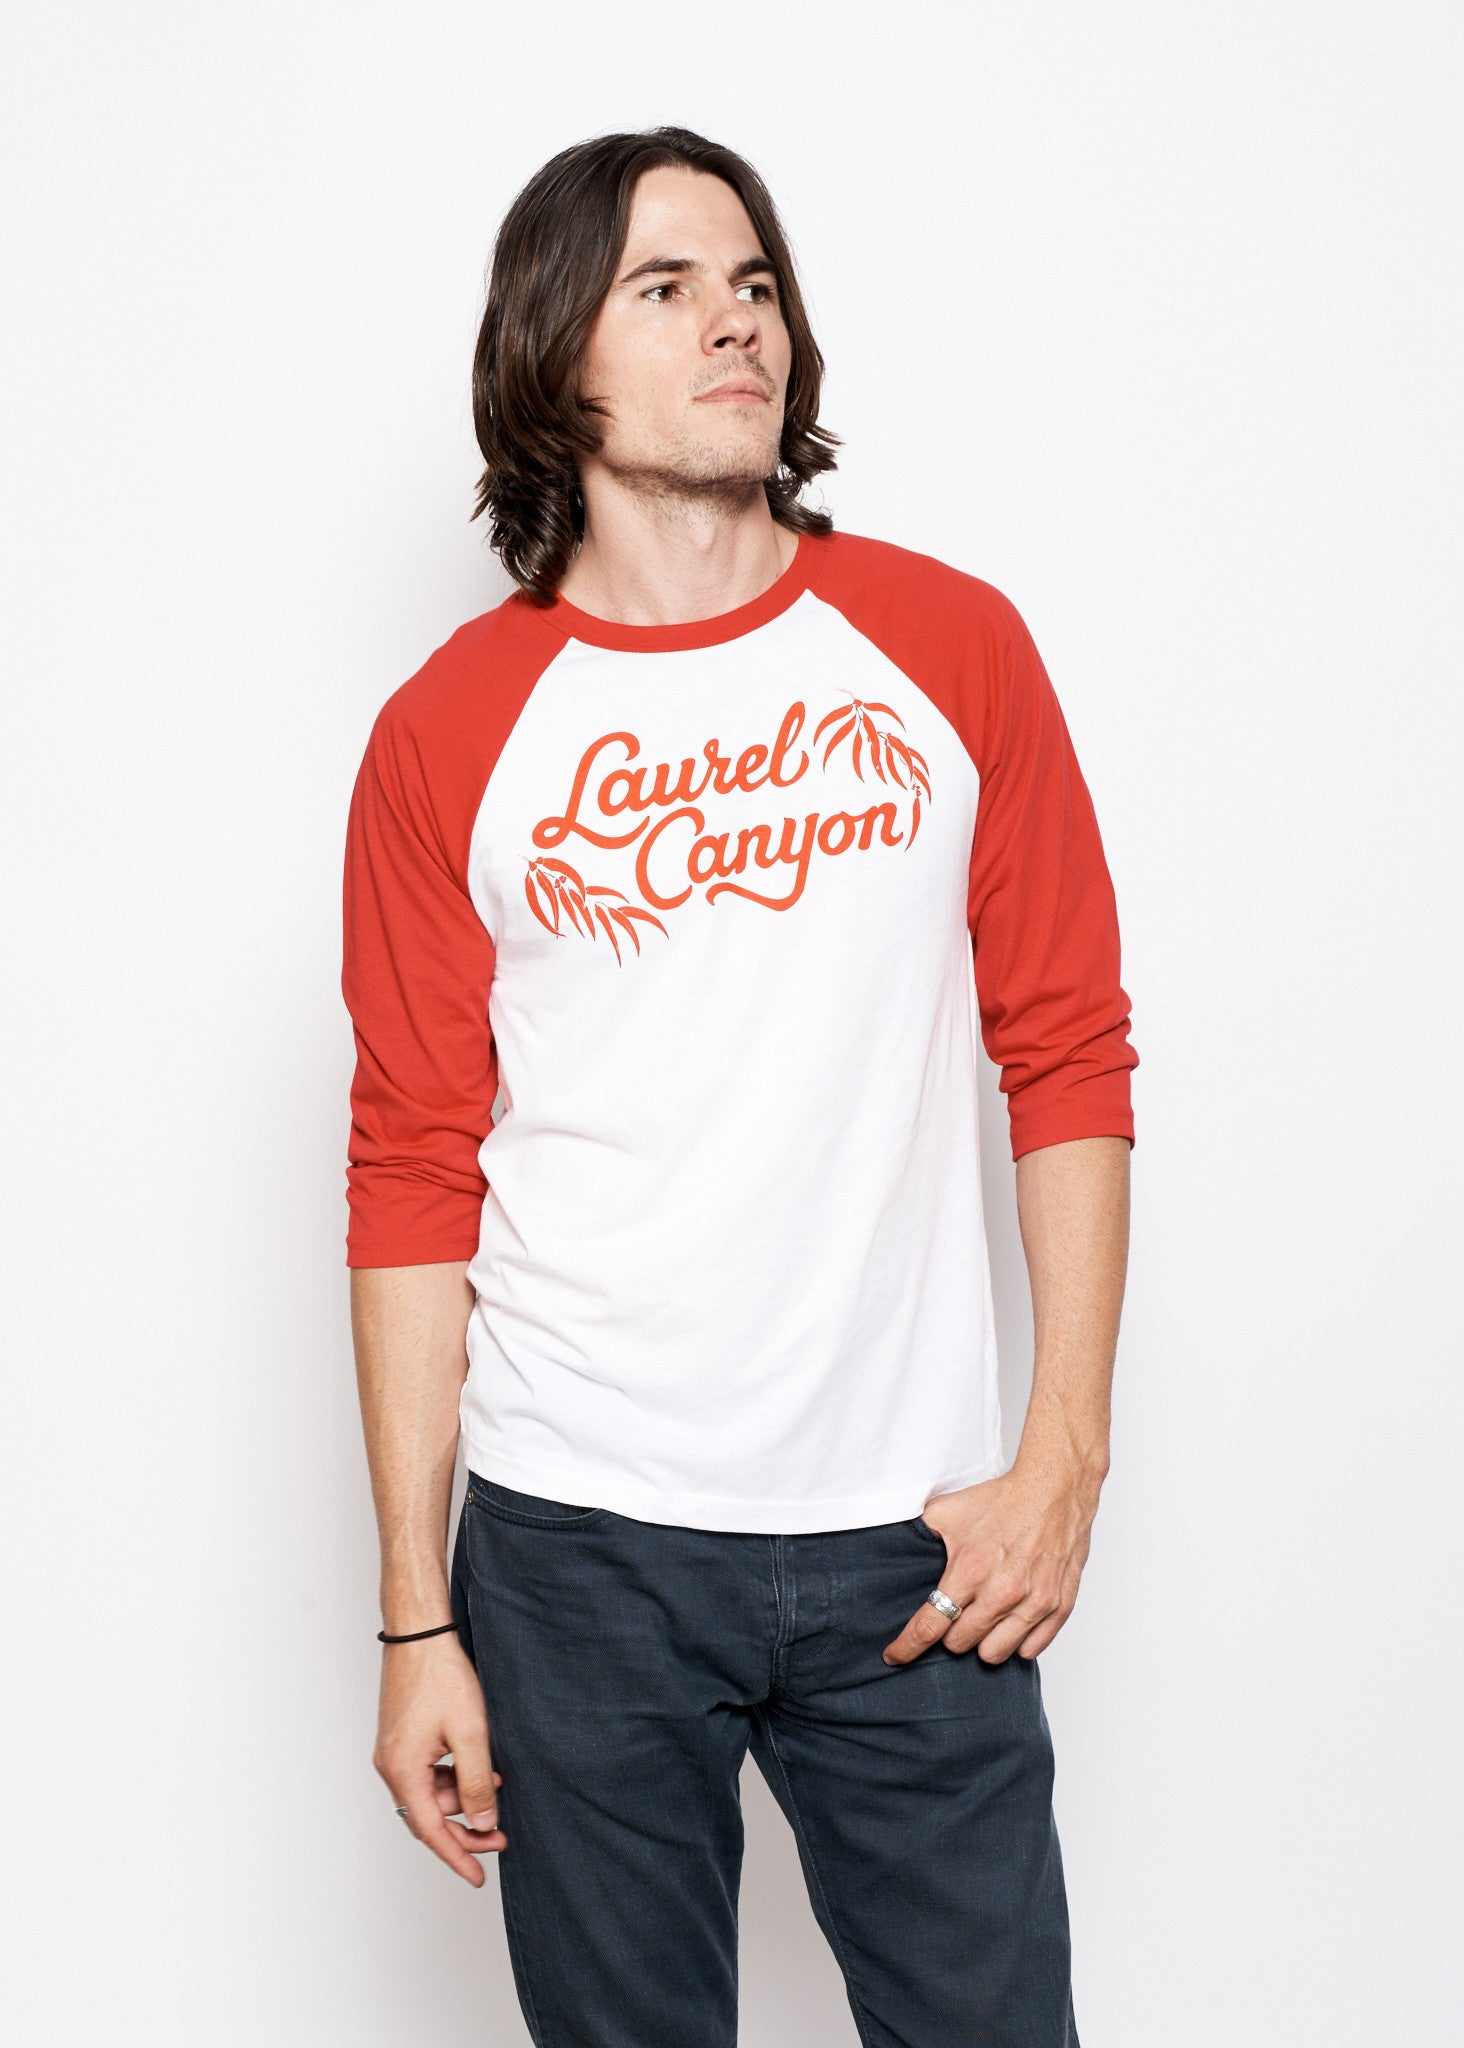 Laurel Canyon Unisex Baseball Tee - White & Red